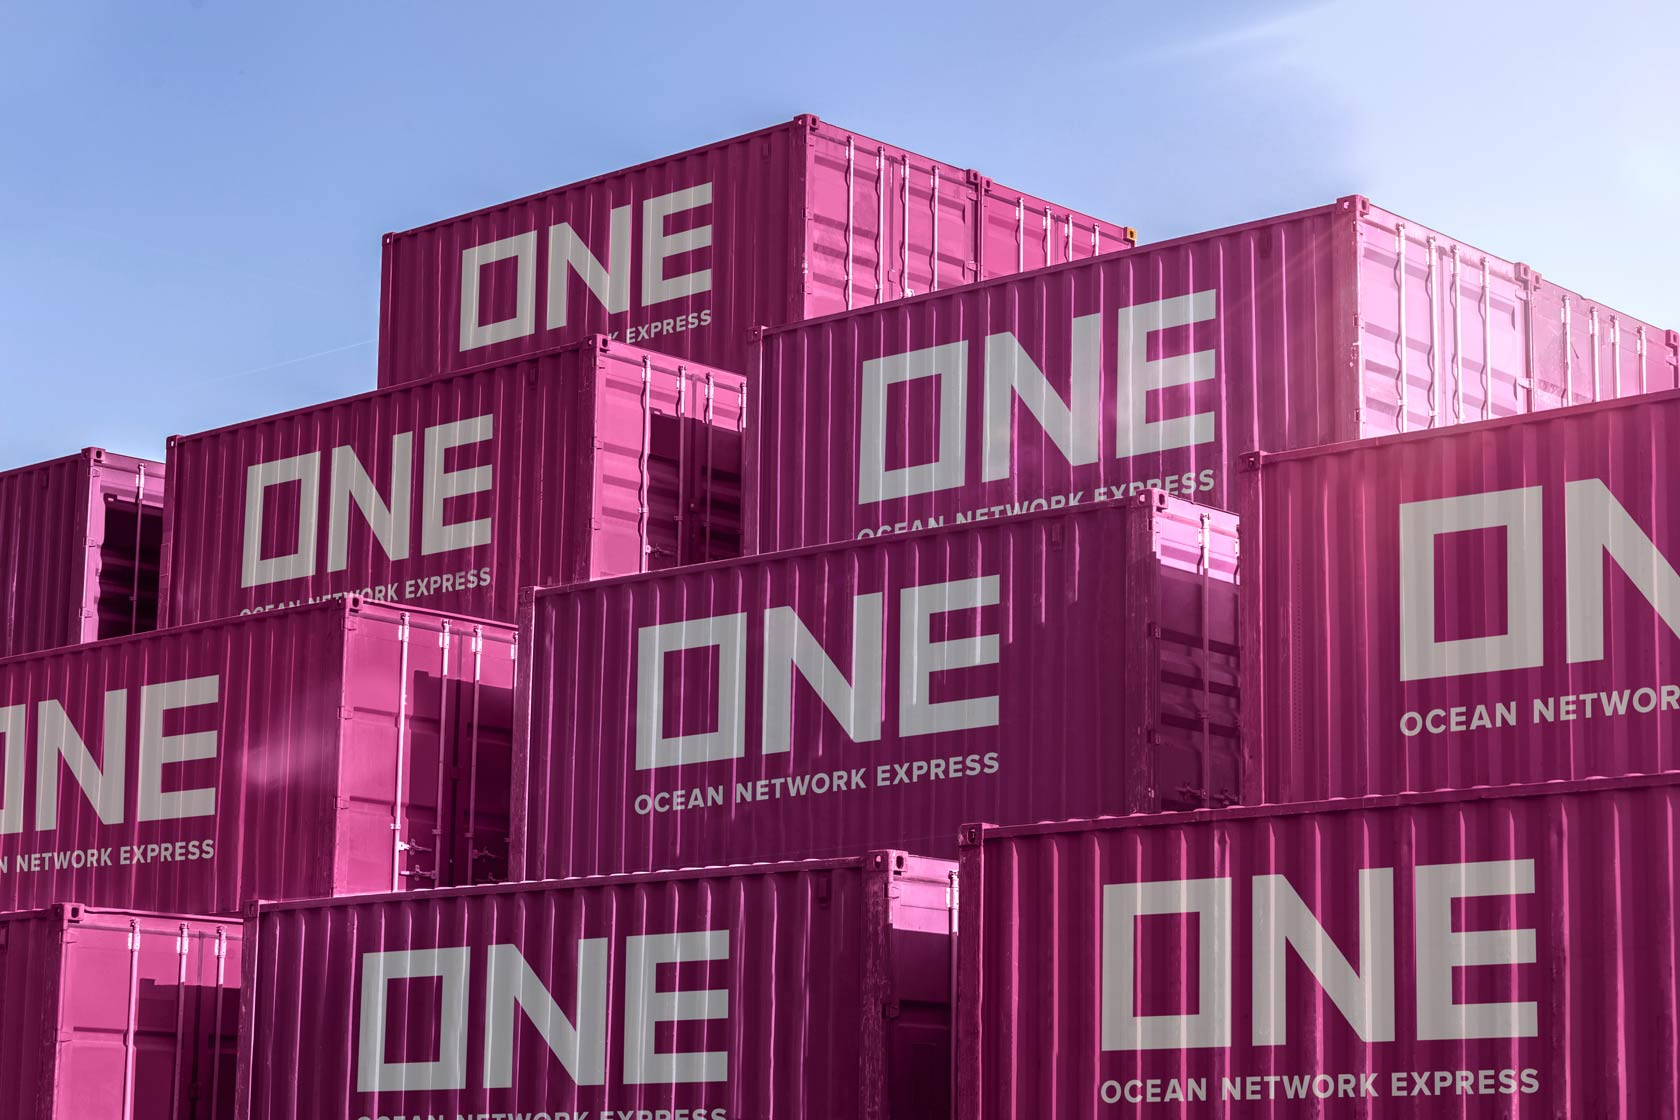 WMH-ONE-OCEAN-NETWORK-EXPRESS-SHIPPING-CONTAINERS-STACK-WEB image